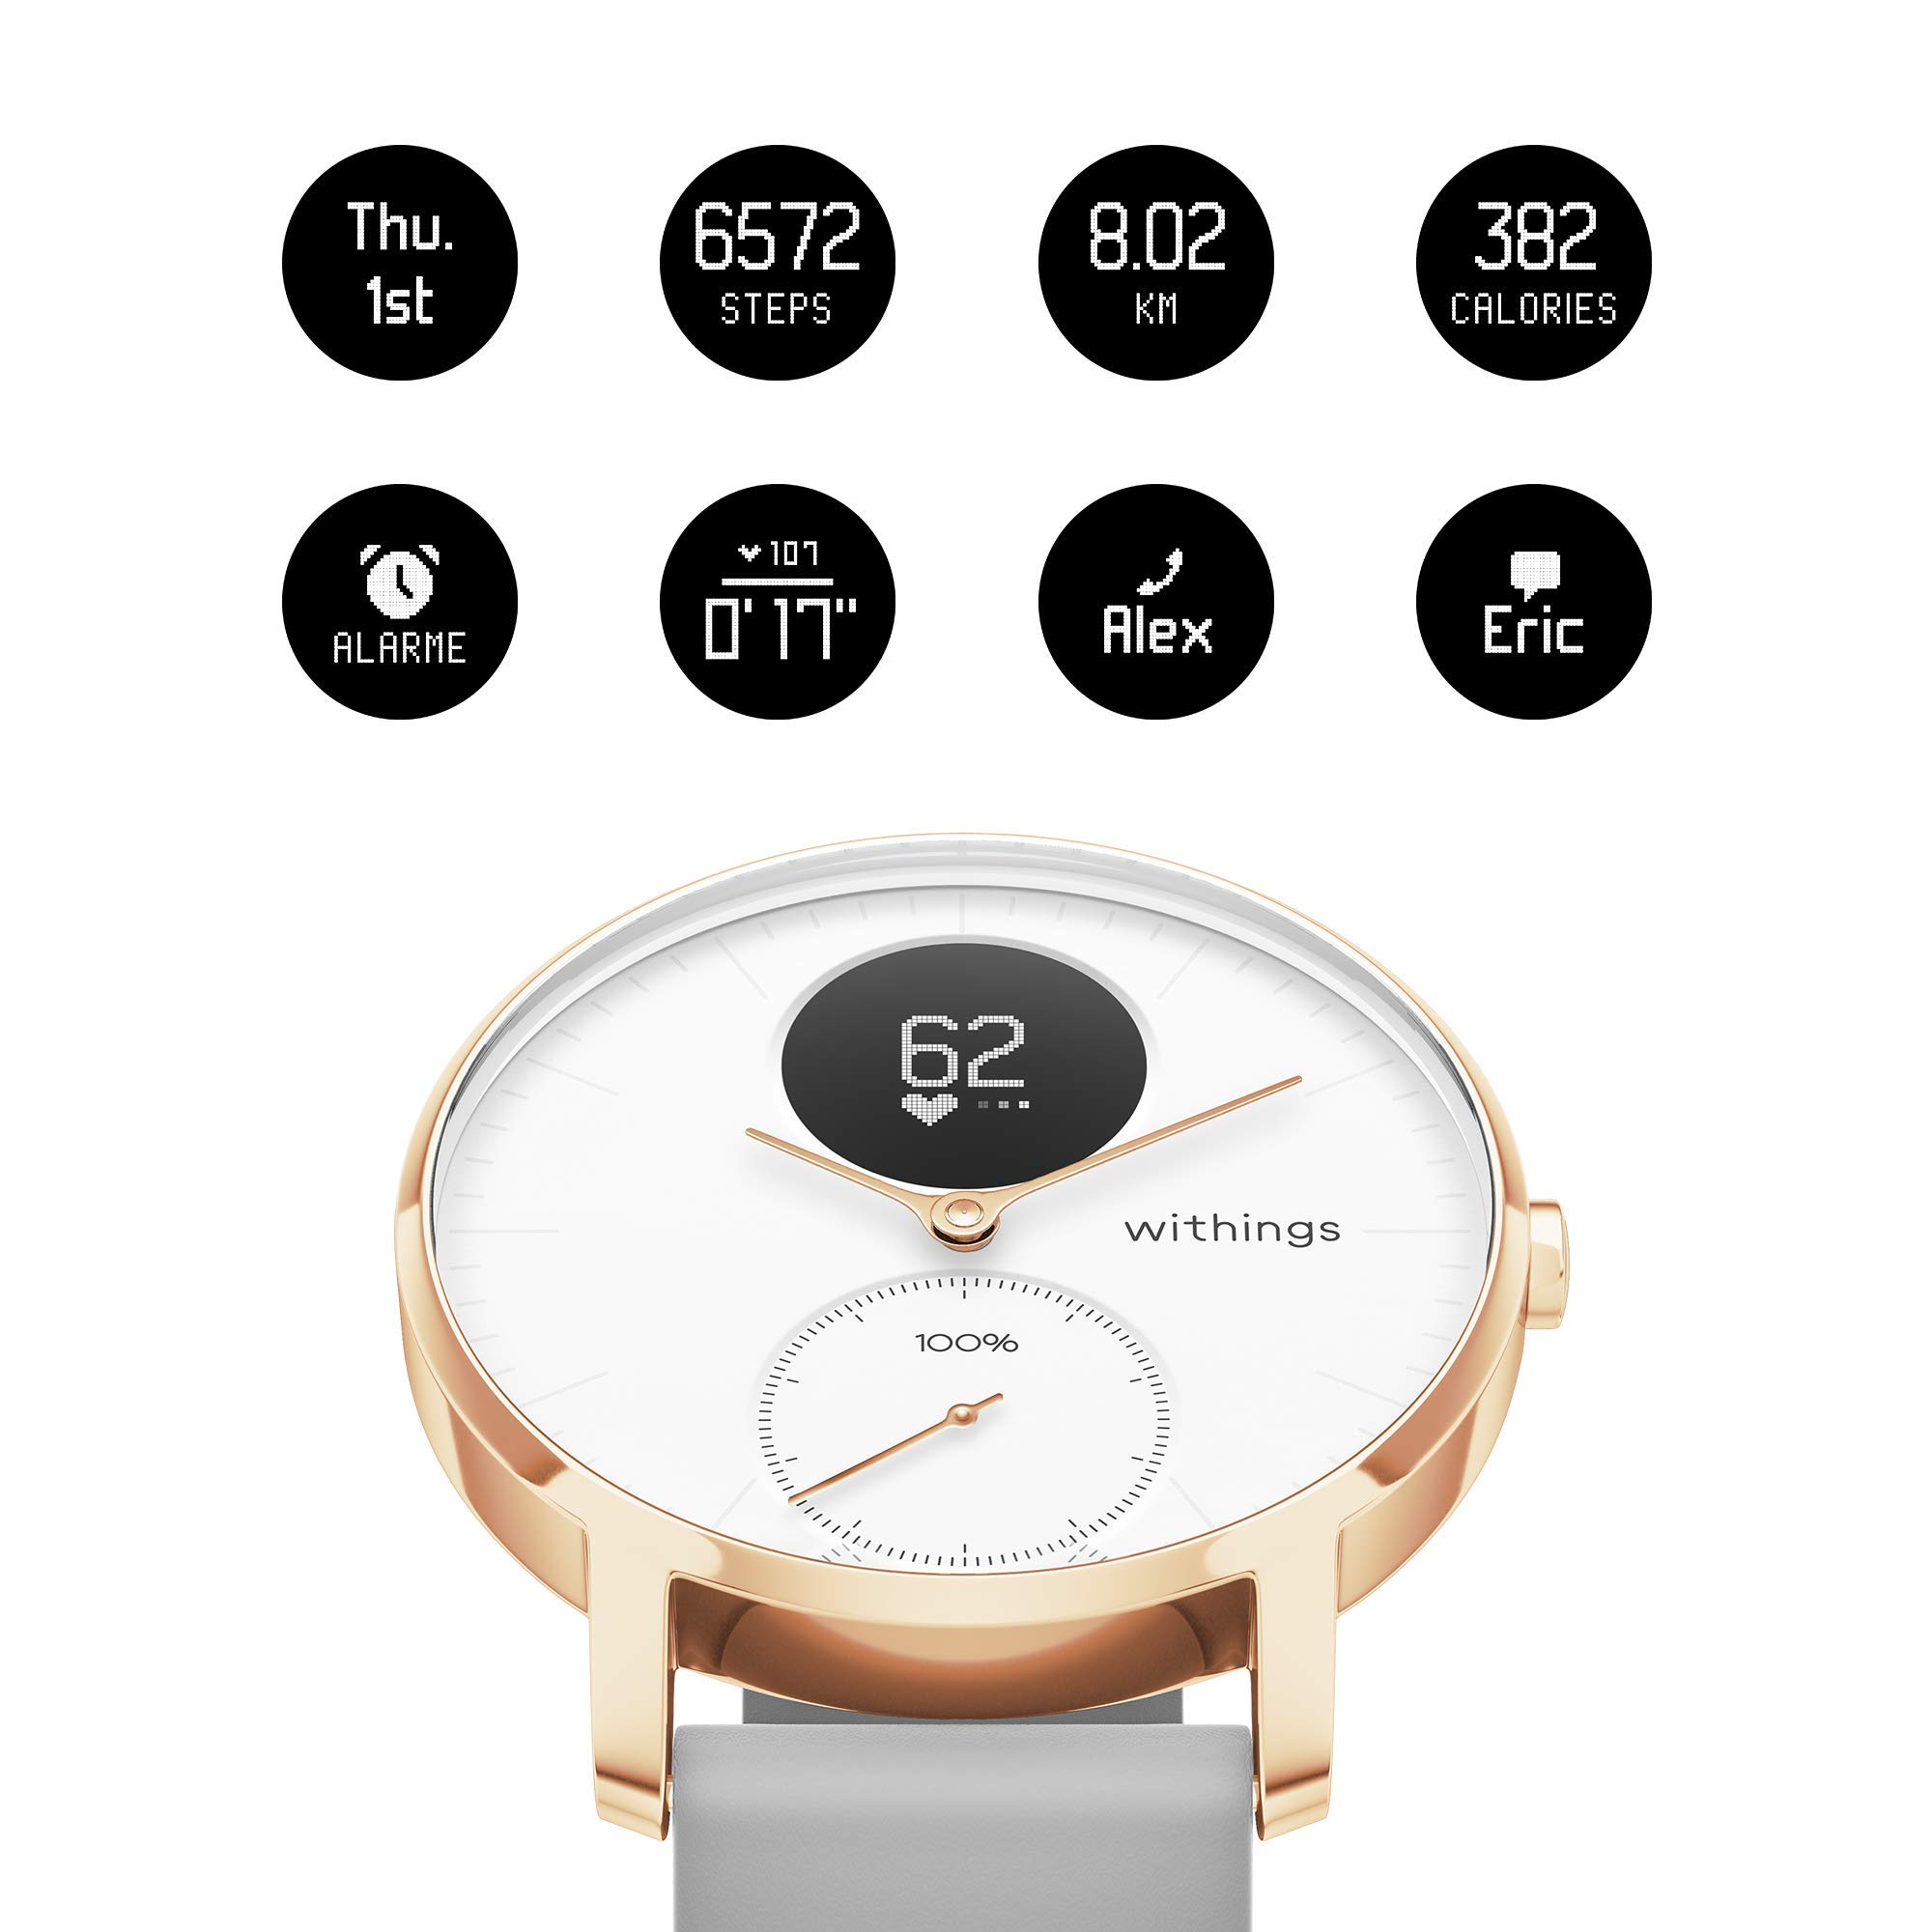 Withings / Nokia | Steel HR Hybrid Smartwatch - Activity Tracker with Connected GPS, Heart Rate Monitor, Sleep Monitor, Water Resistant Smart Watch with 25-day battery life (Renewed) by Withings (Image #3)